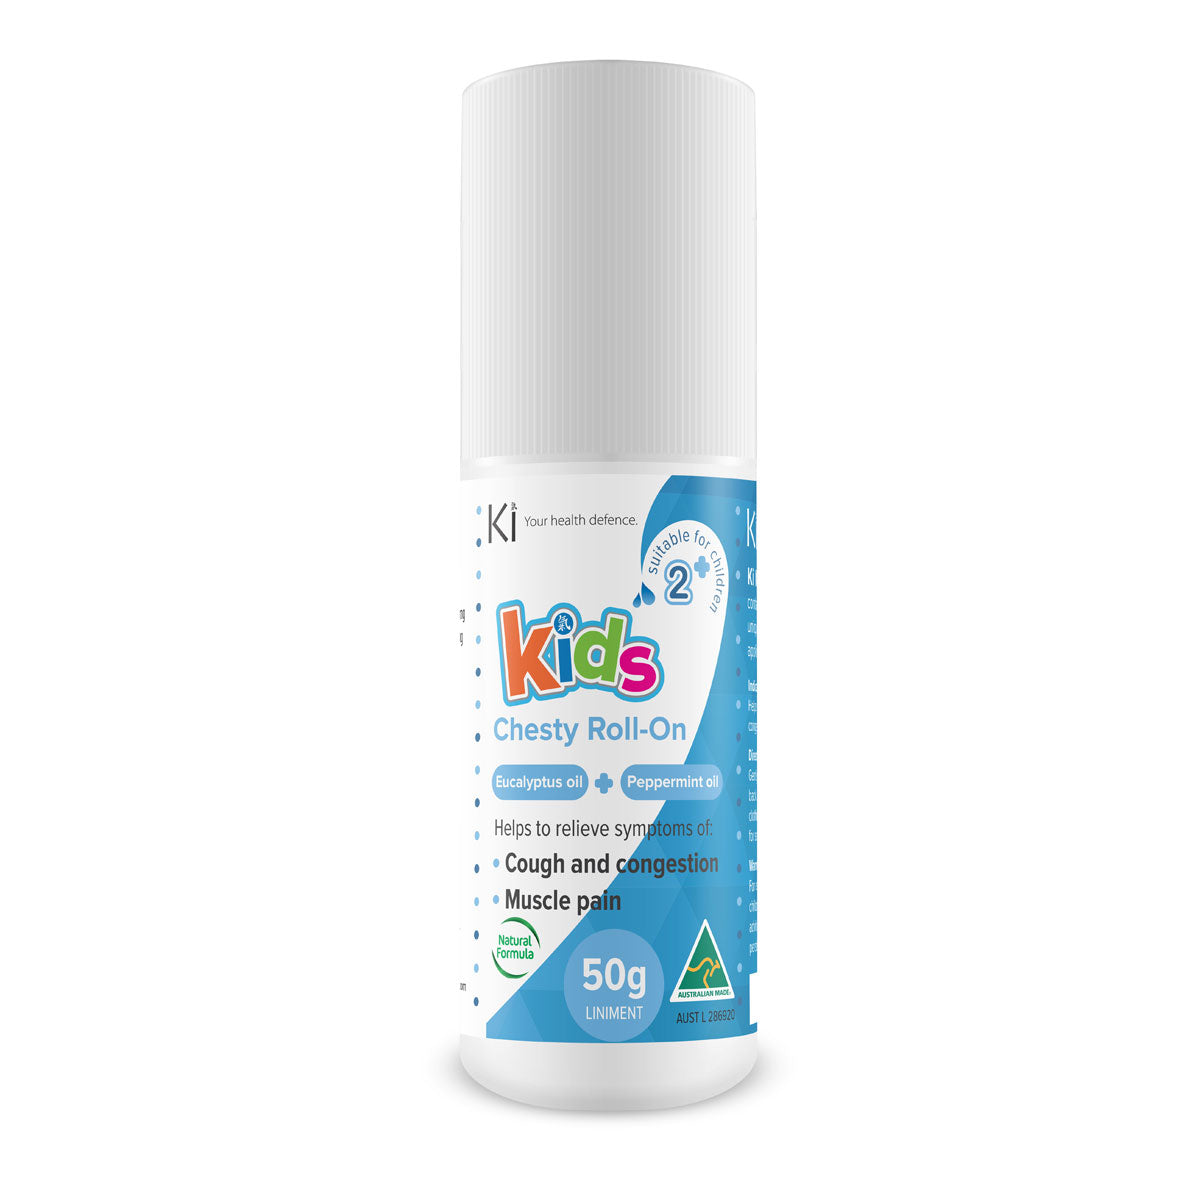 Ki Kids Chesty Roll-On 50g